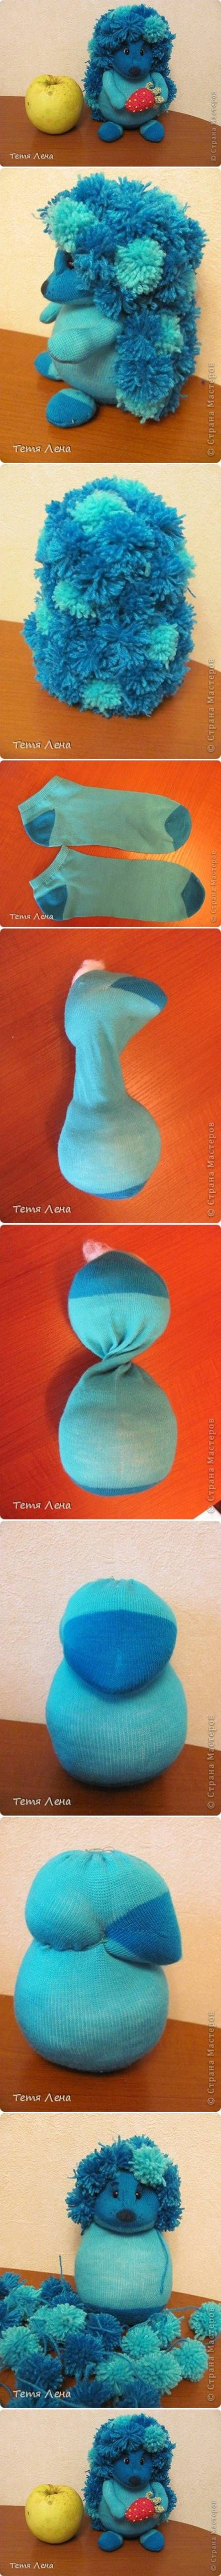 How to make Sock Hedgehog pets step by step DIY tutorial instructions